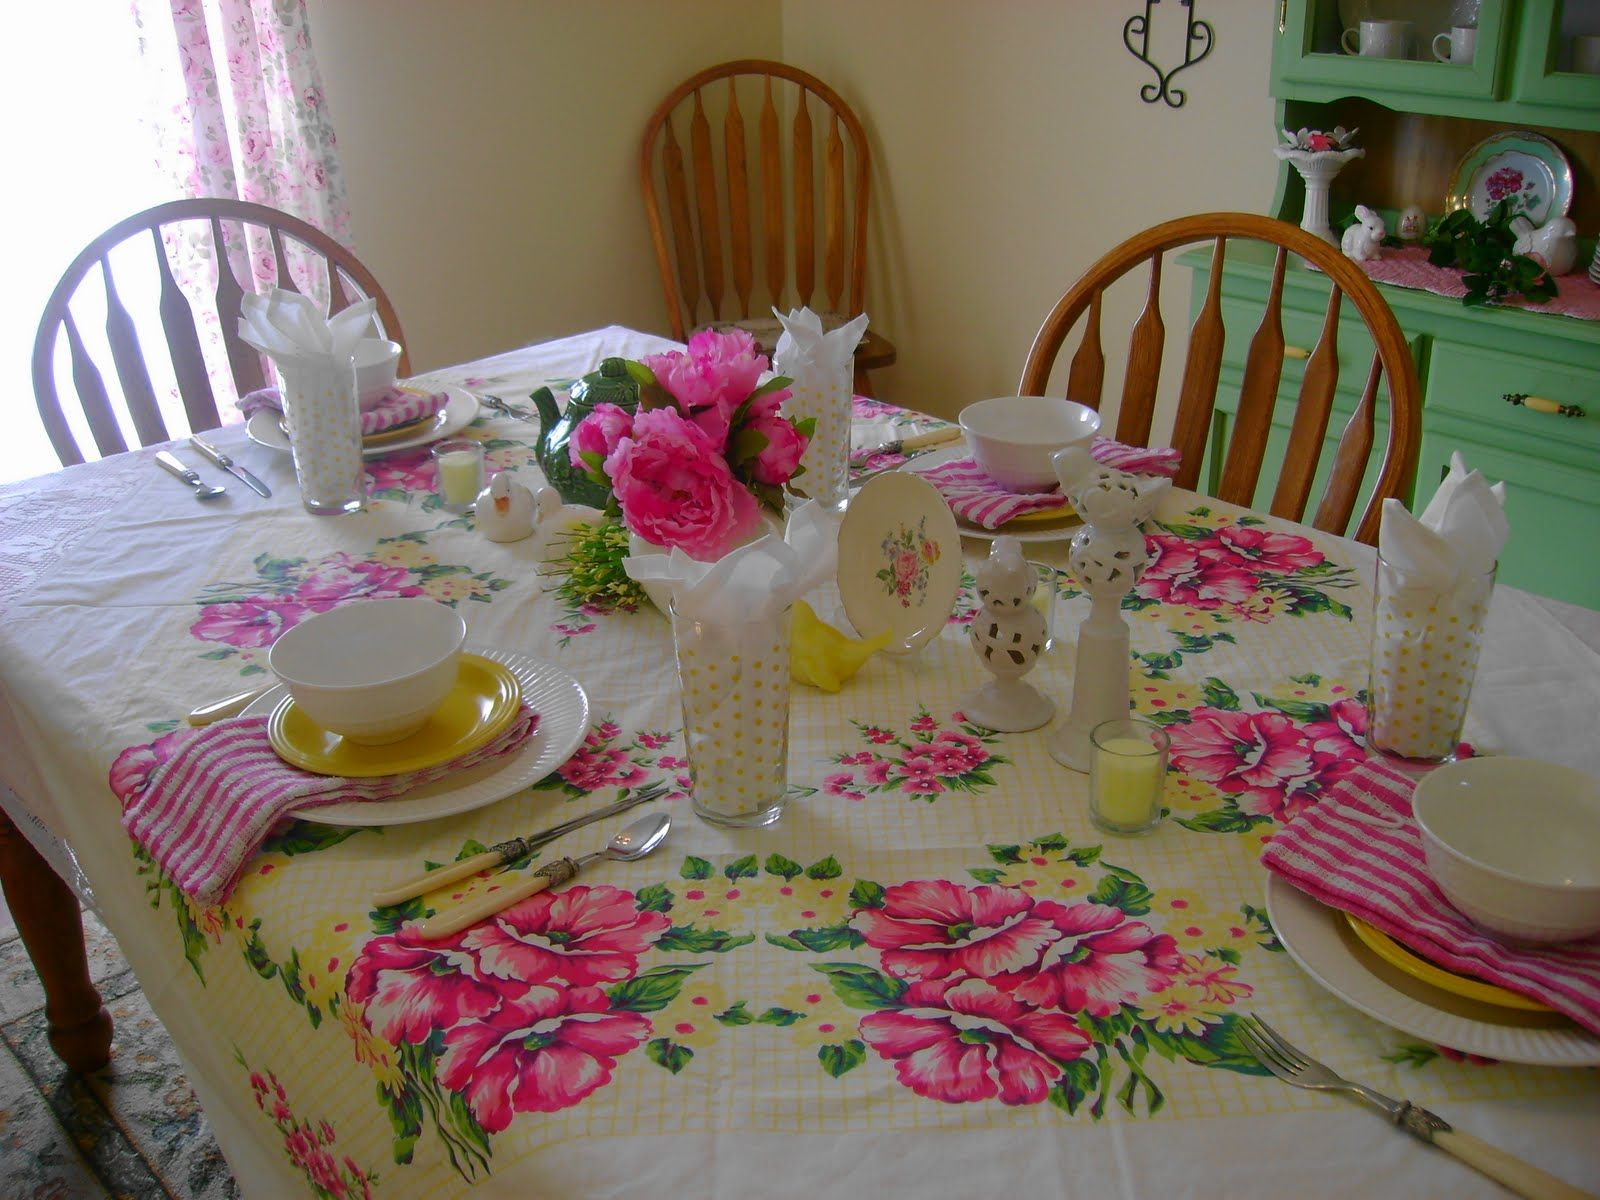 Beauty of Vintage Tablecloth's